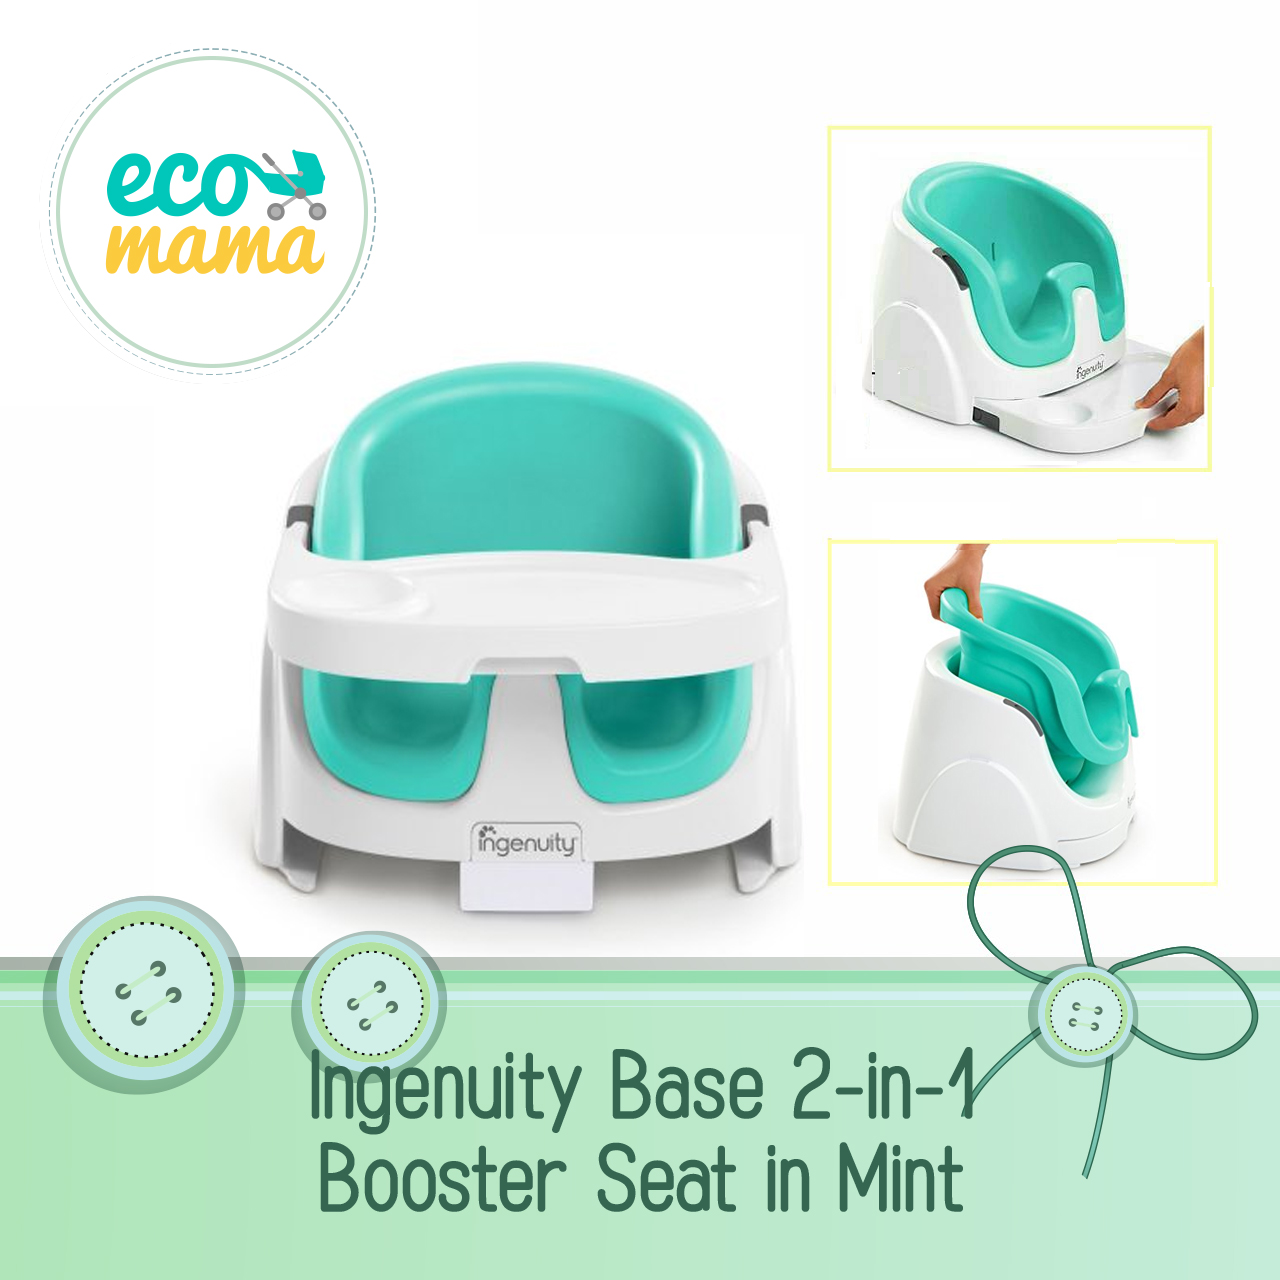 Ingenuity Baby Base 2 in 1 in Mint Green